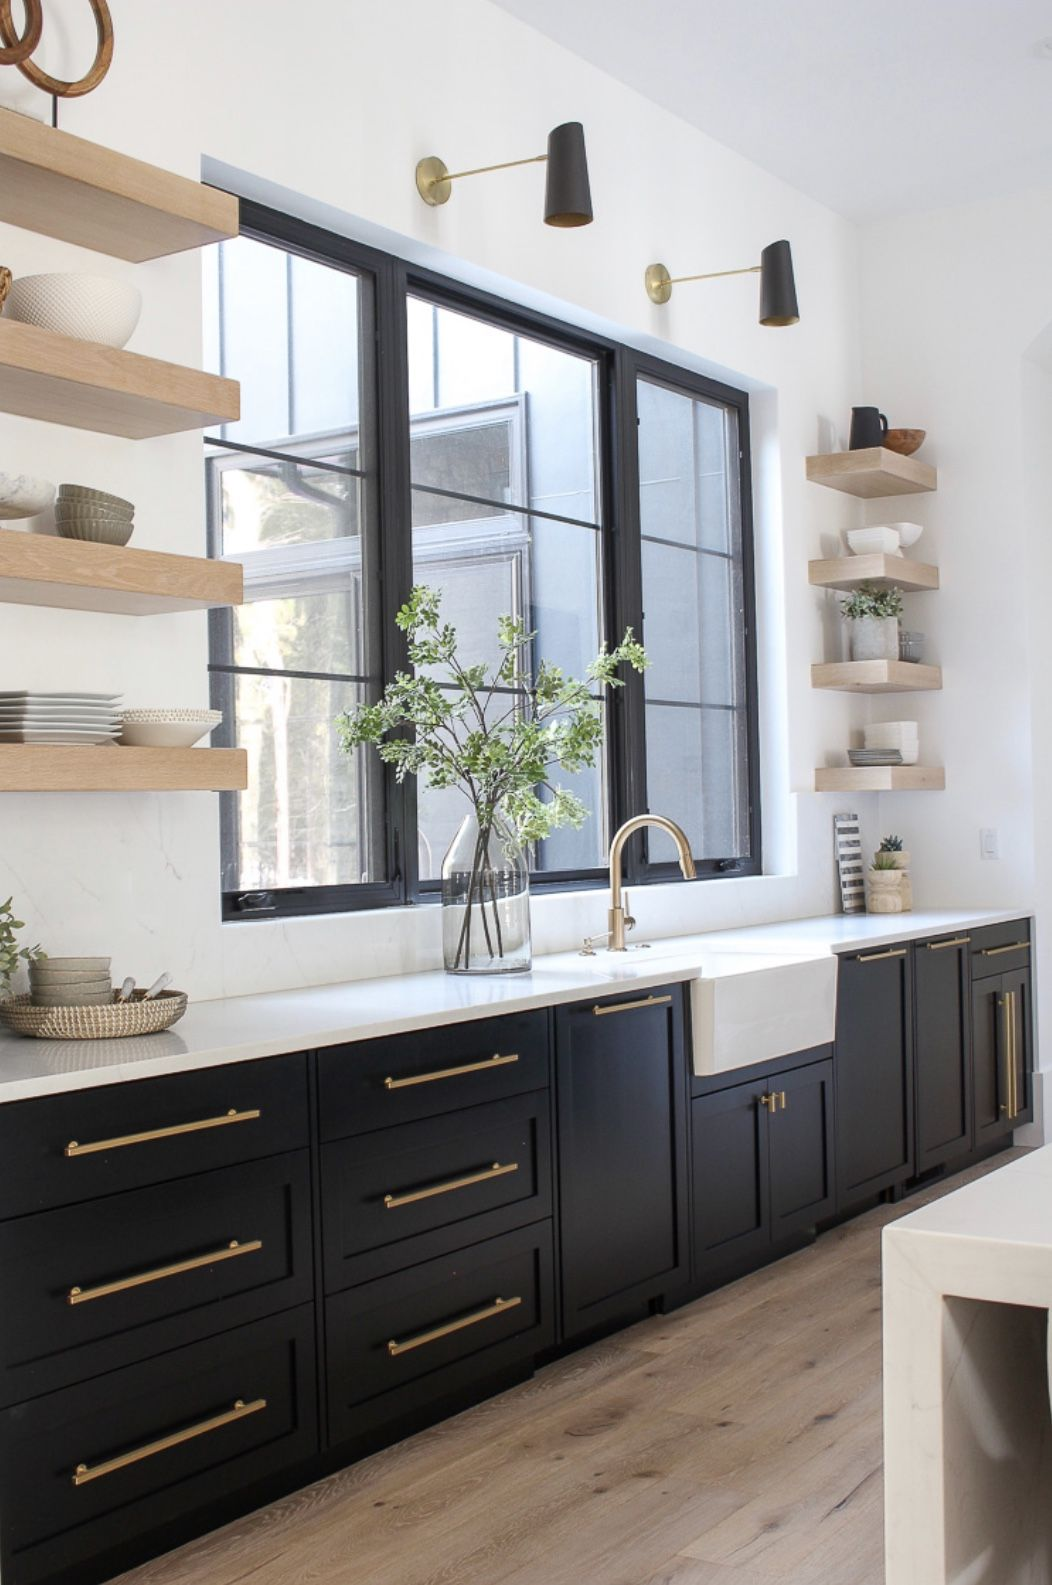 5 Current Kitchen Trends Now Beautiful Kitchen Cabinets Painted Kitchen Cabinets Colors Kitchen Design